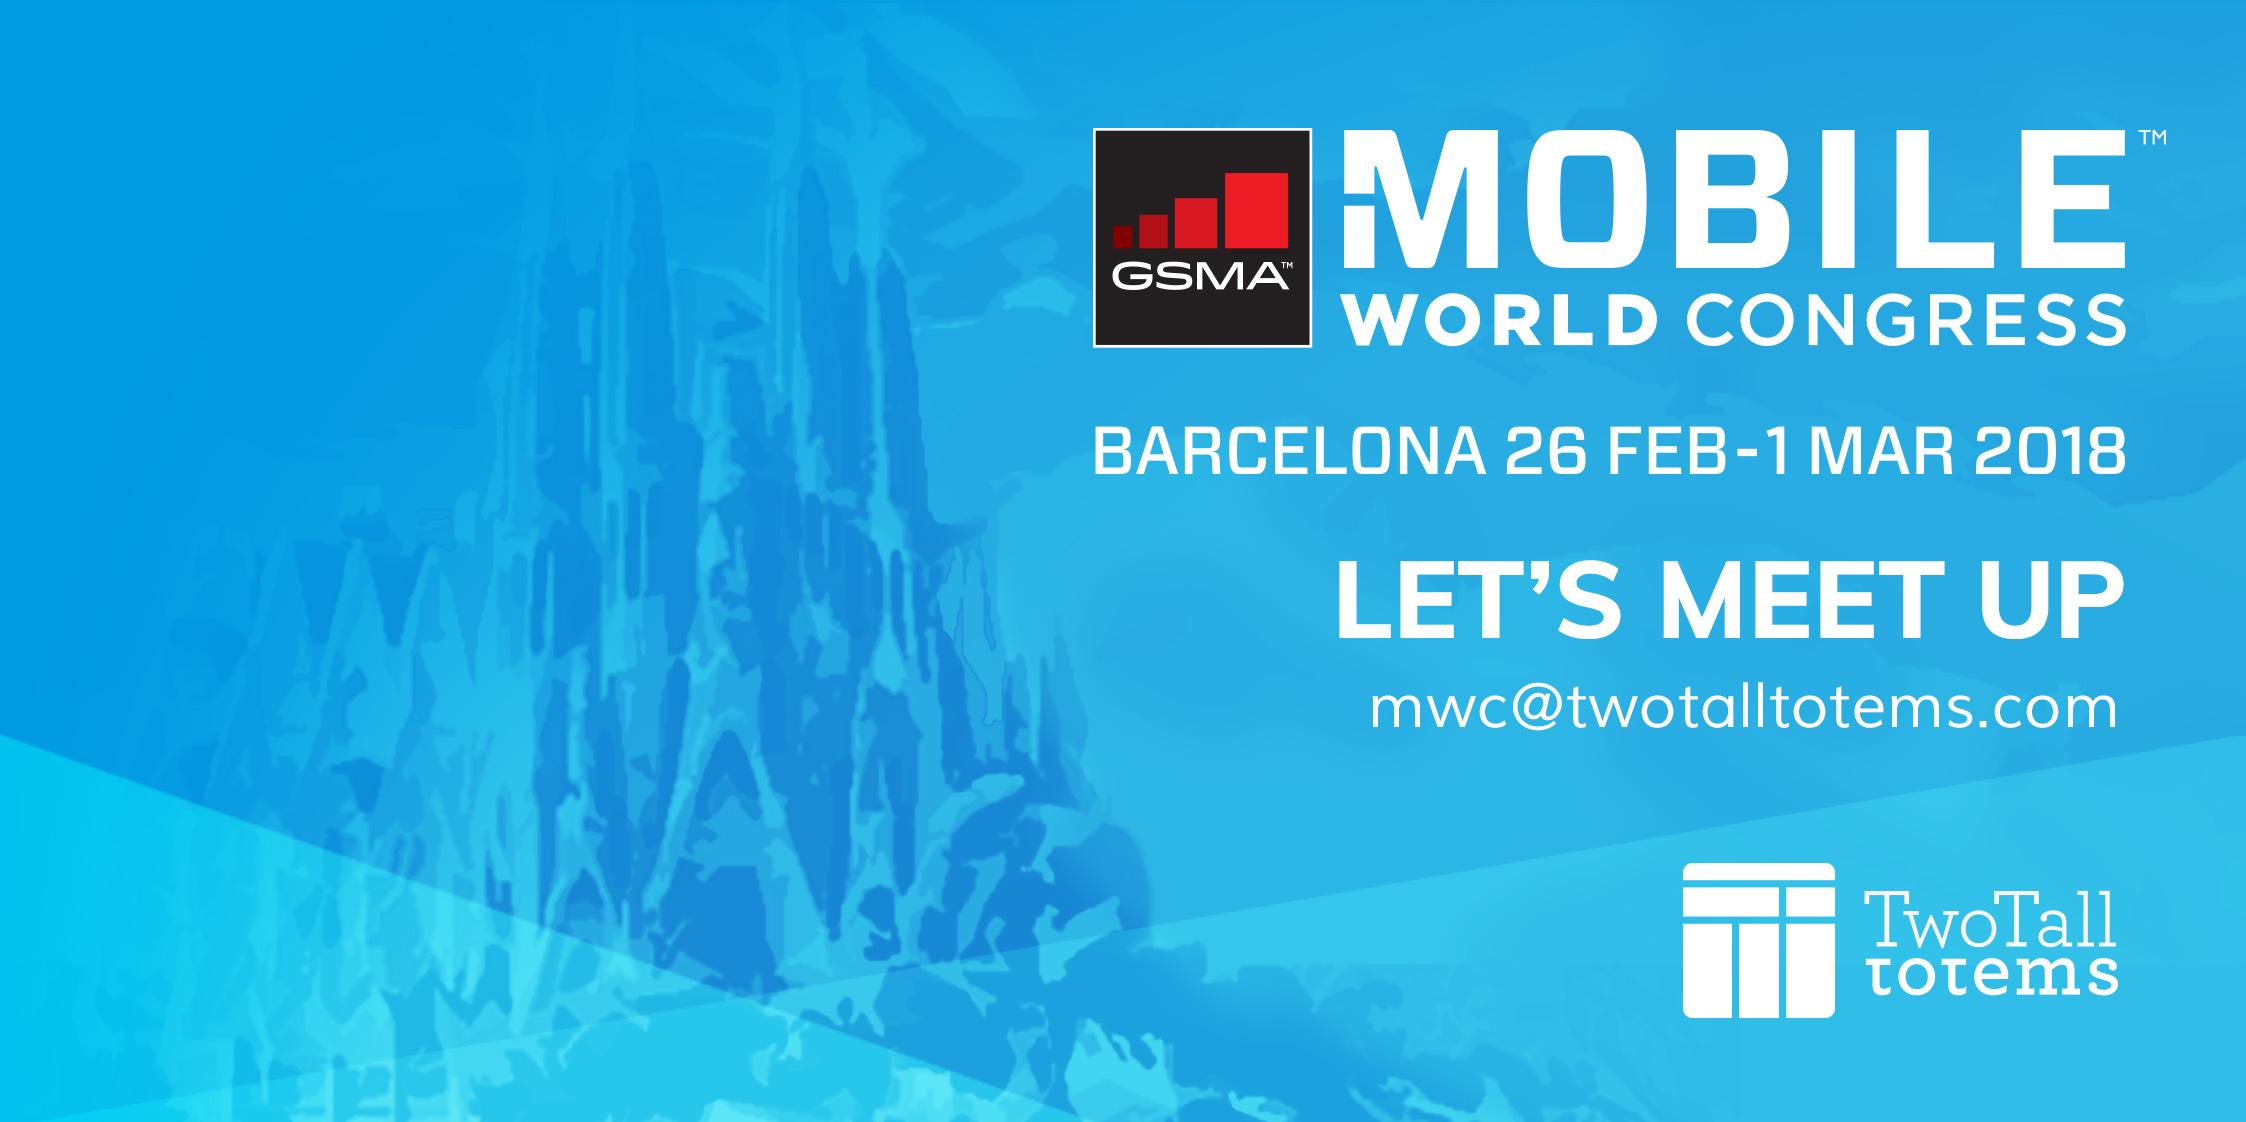 See you at Mobile World Congress 2018